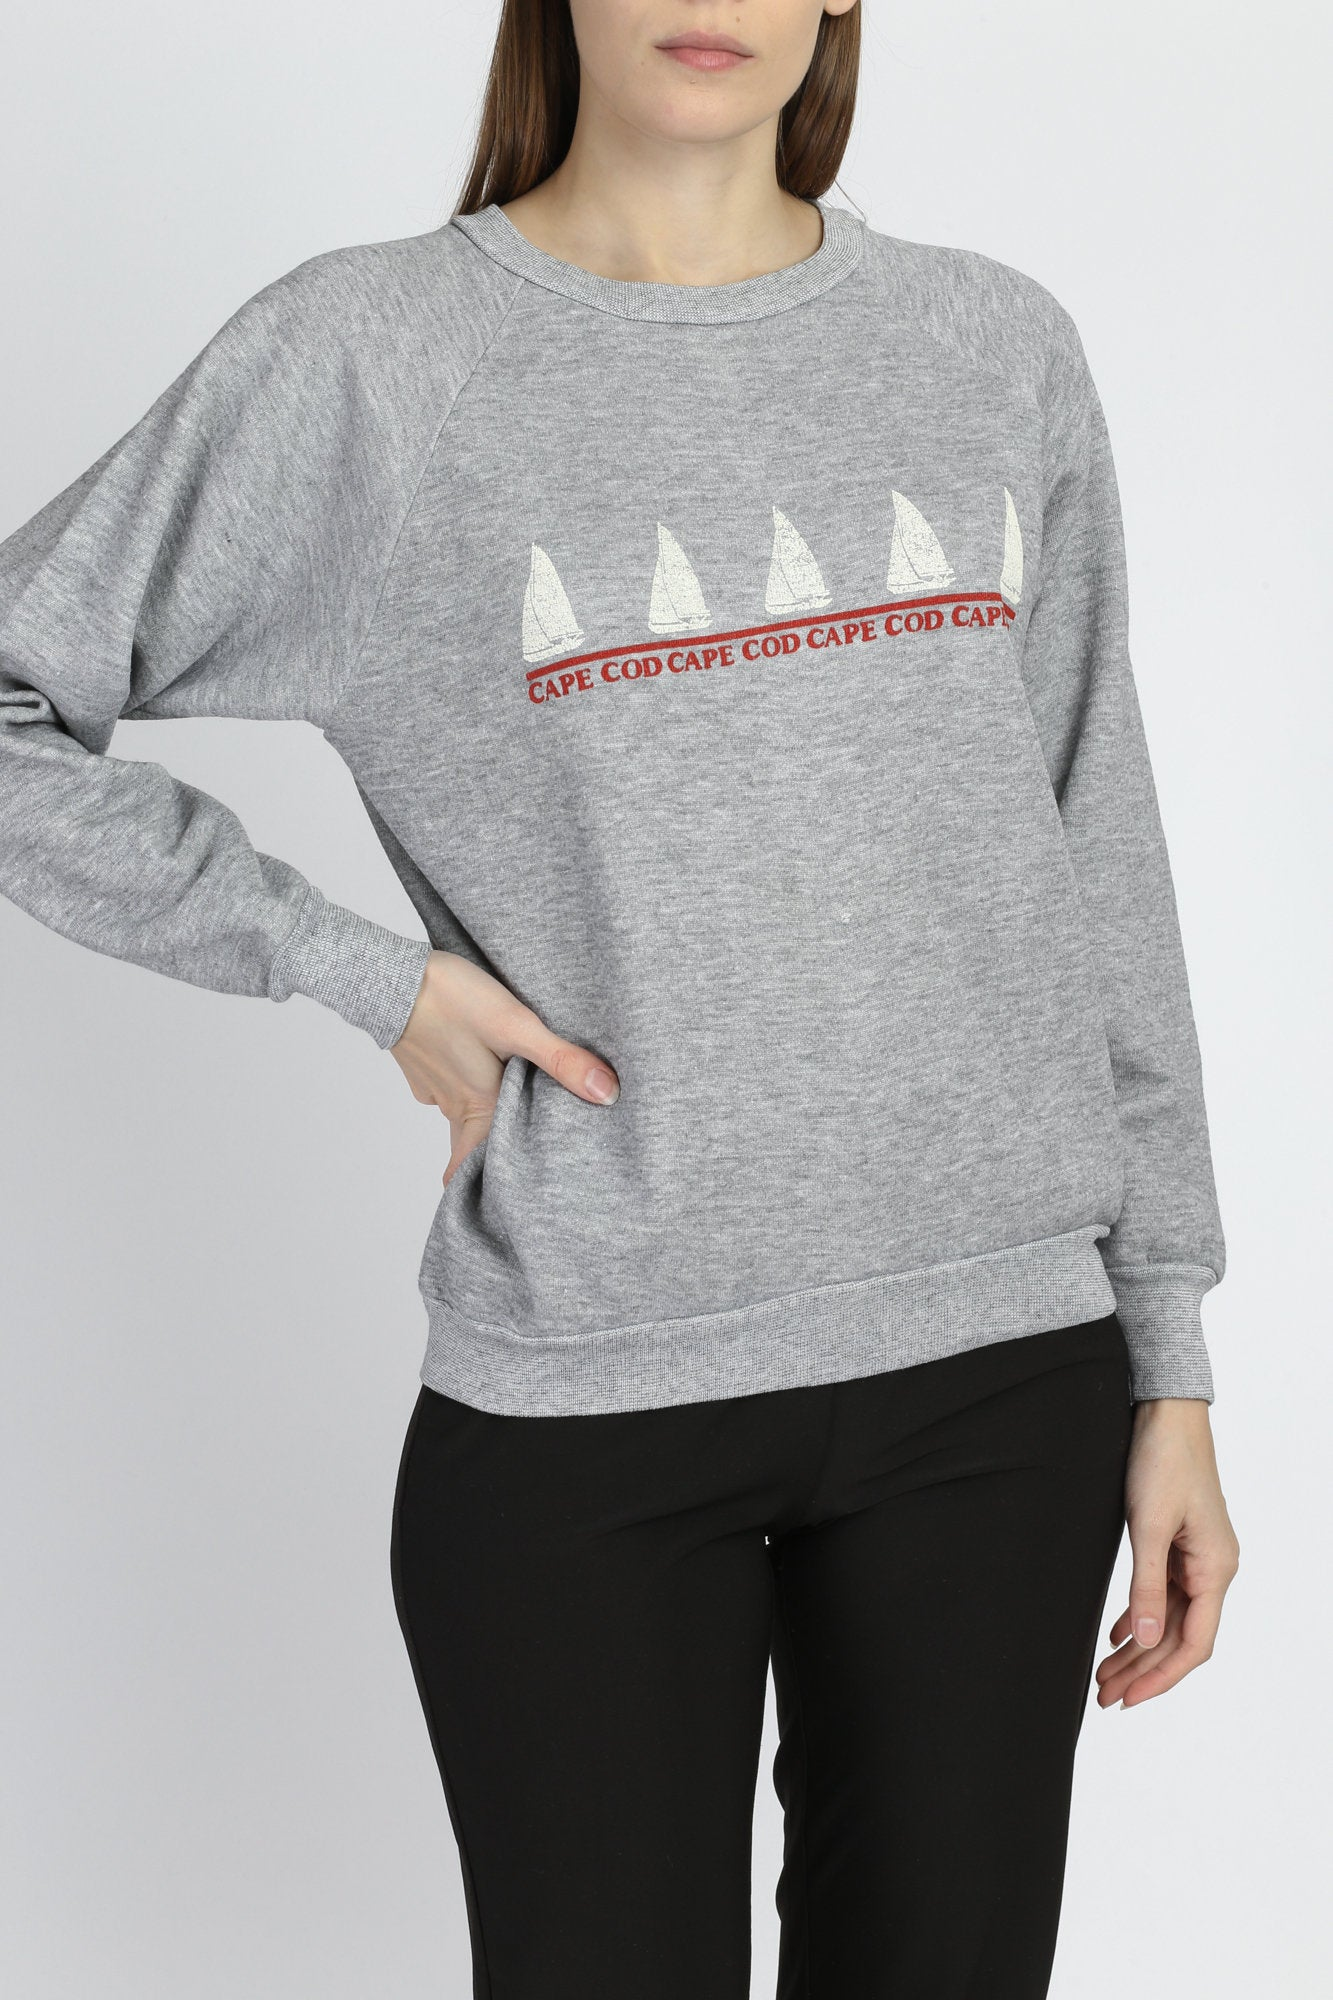 80s Cape Cod Sail Boat Sweatshirt - Medium